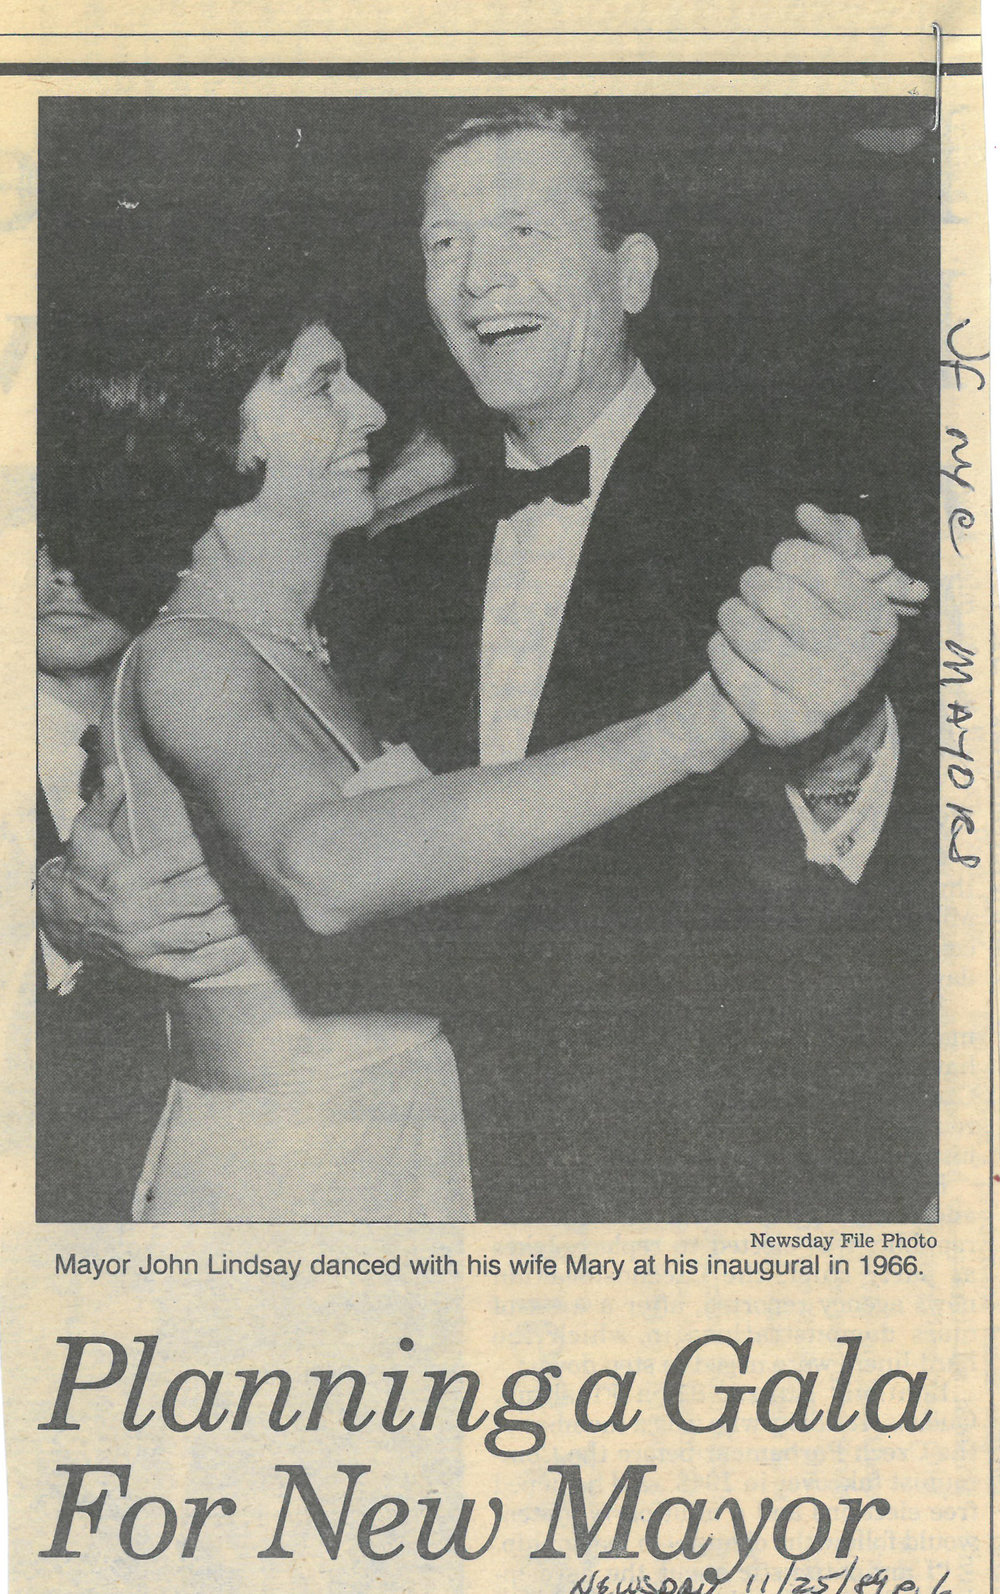 This  Newsday  File Photo shows the smiling Mayor John V. Lindsay with his wife Mary at his 1966 inaugural. The smile faded quickly. At 2 a.m. on January 1st, the new Mayor issued a press release announcing negotiations between the Transport Workers Union and the Transit Authority had broken down and a transit strike would commence at 5 a.m. NYC Municipal Library.